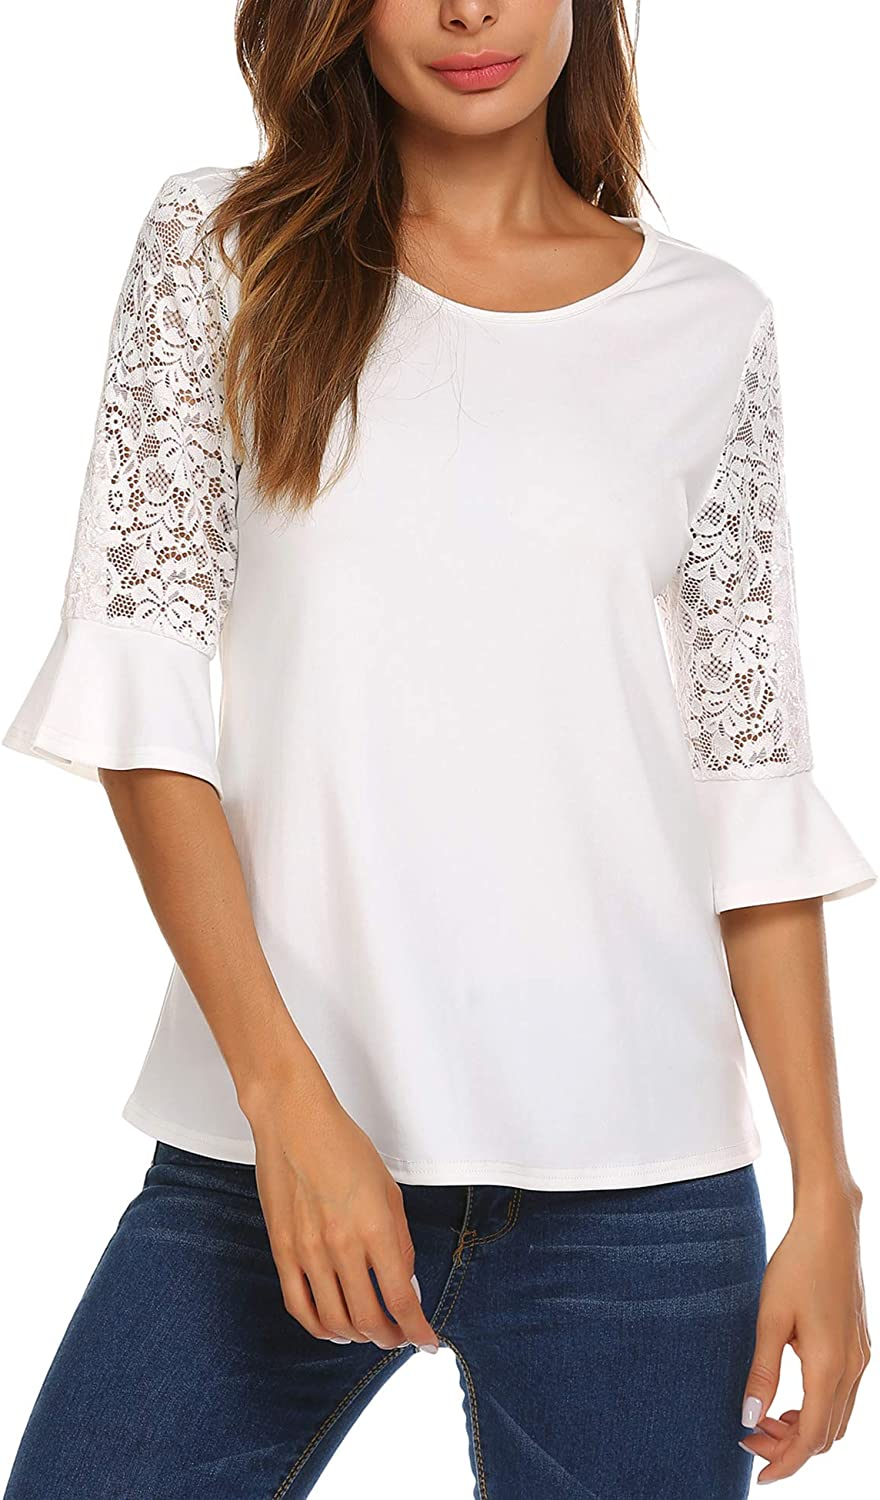 Meaneor 3/4 Sleeve Women Tops and Blouses Solid Lace Summer Tops Round Neck T-Shirts for Women S-XXL